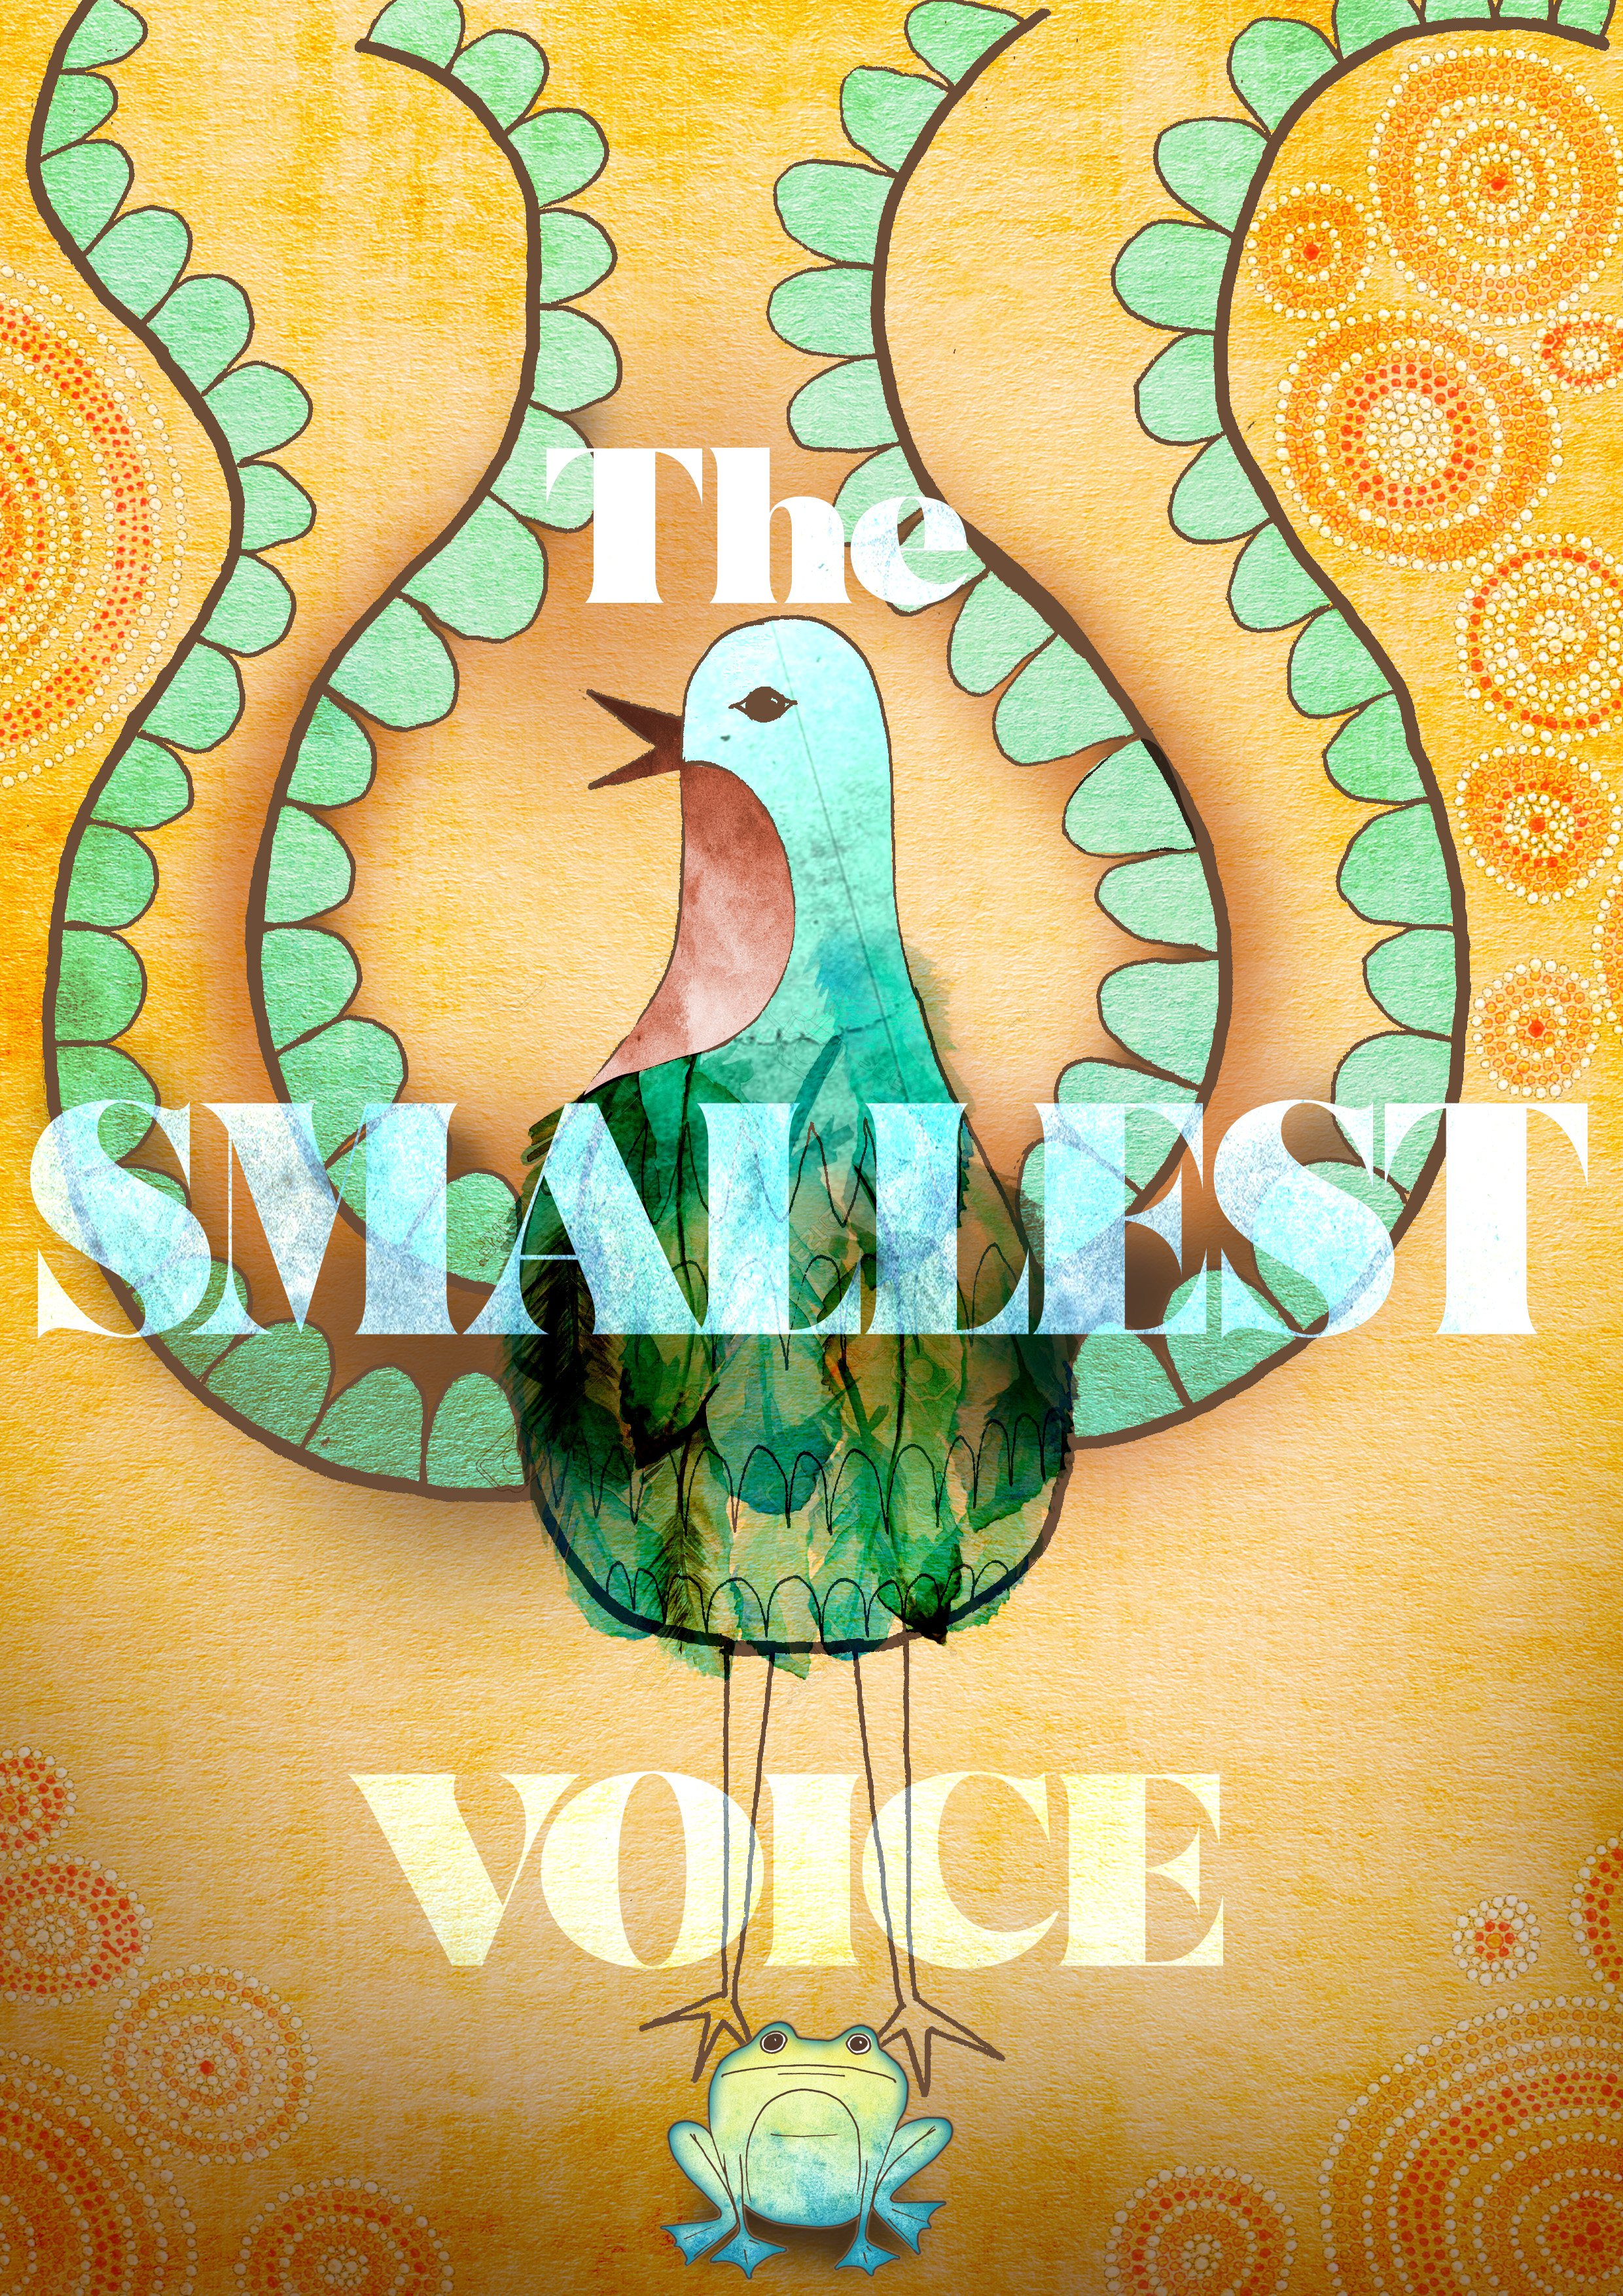 The smallest voice cover.jpg